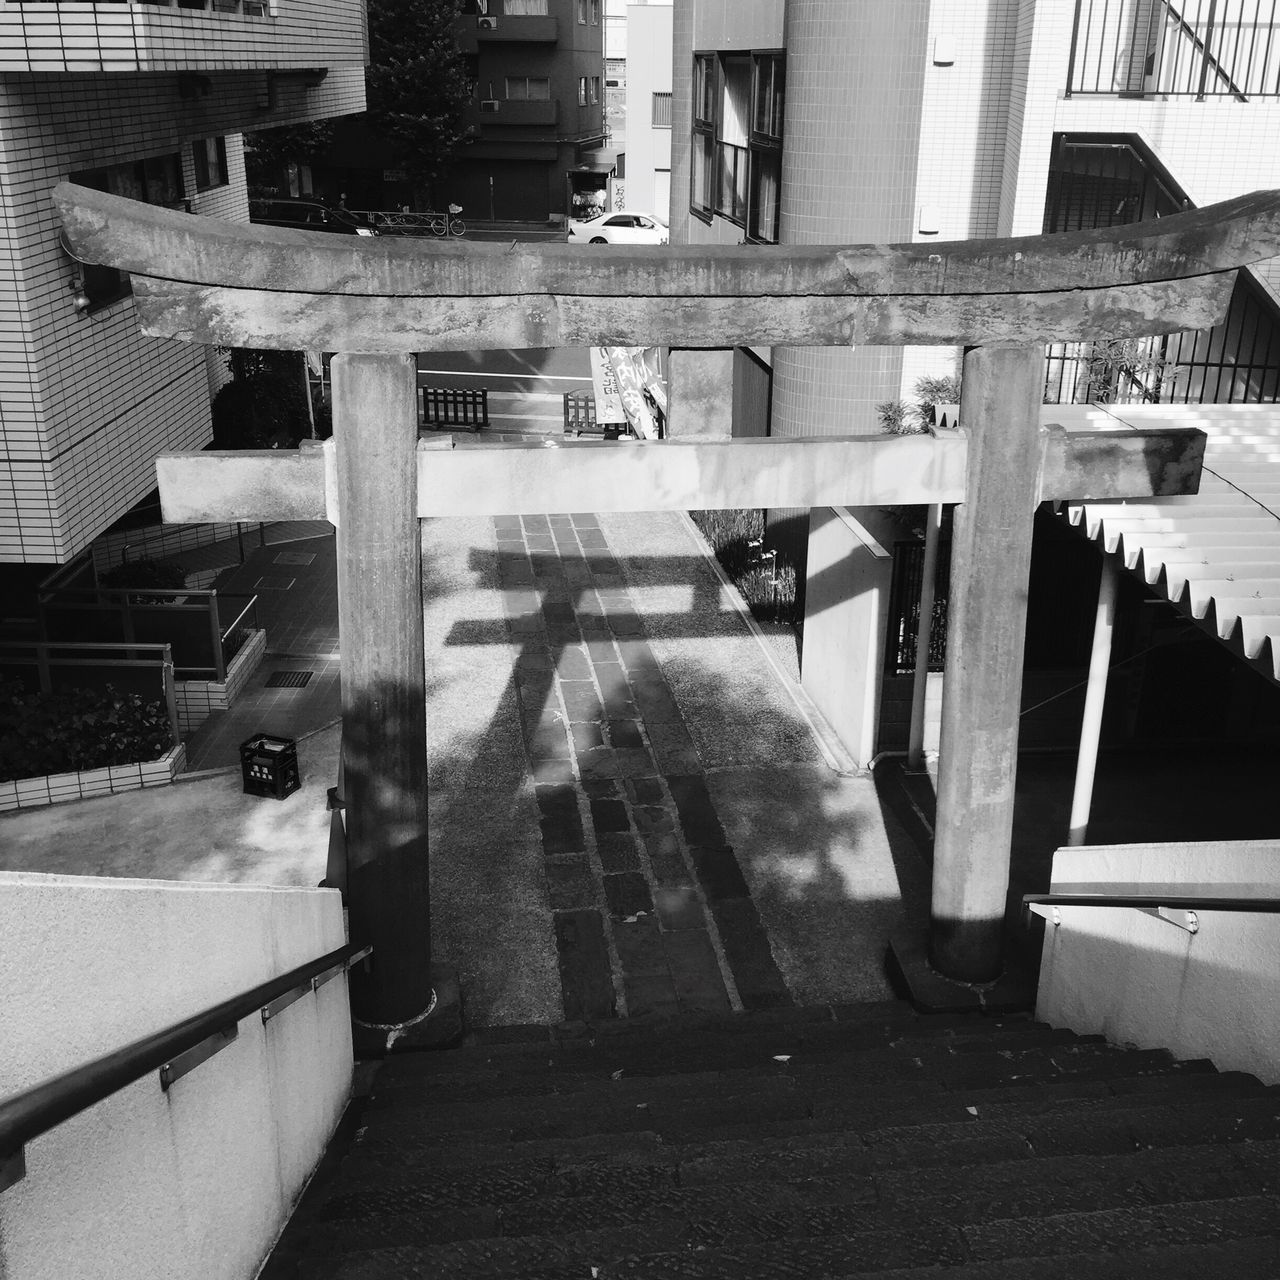 architecture, building exterior, built structure, steps, outdoors, no people, day, city